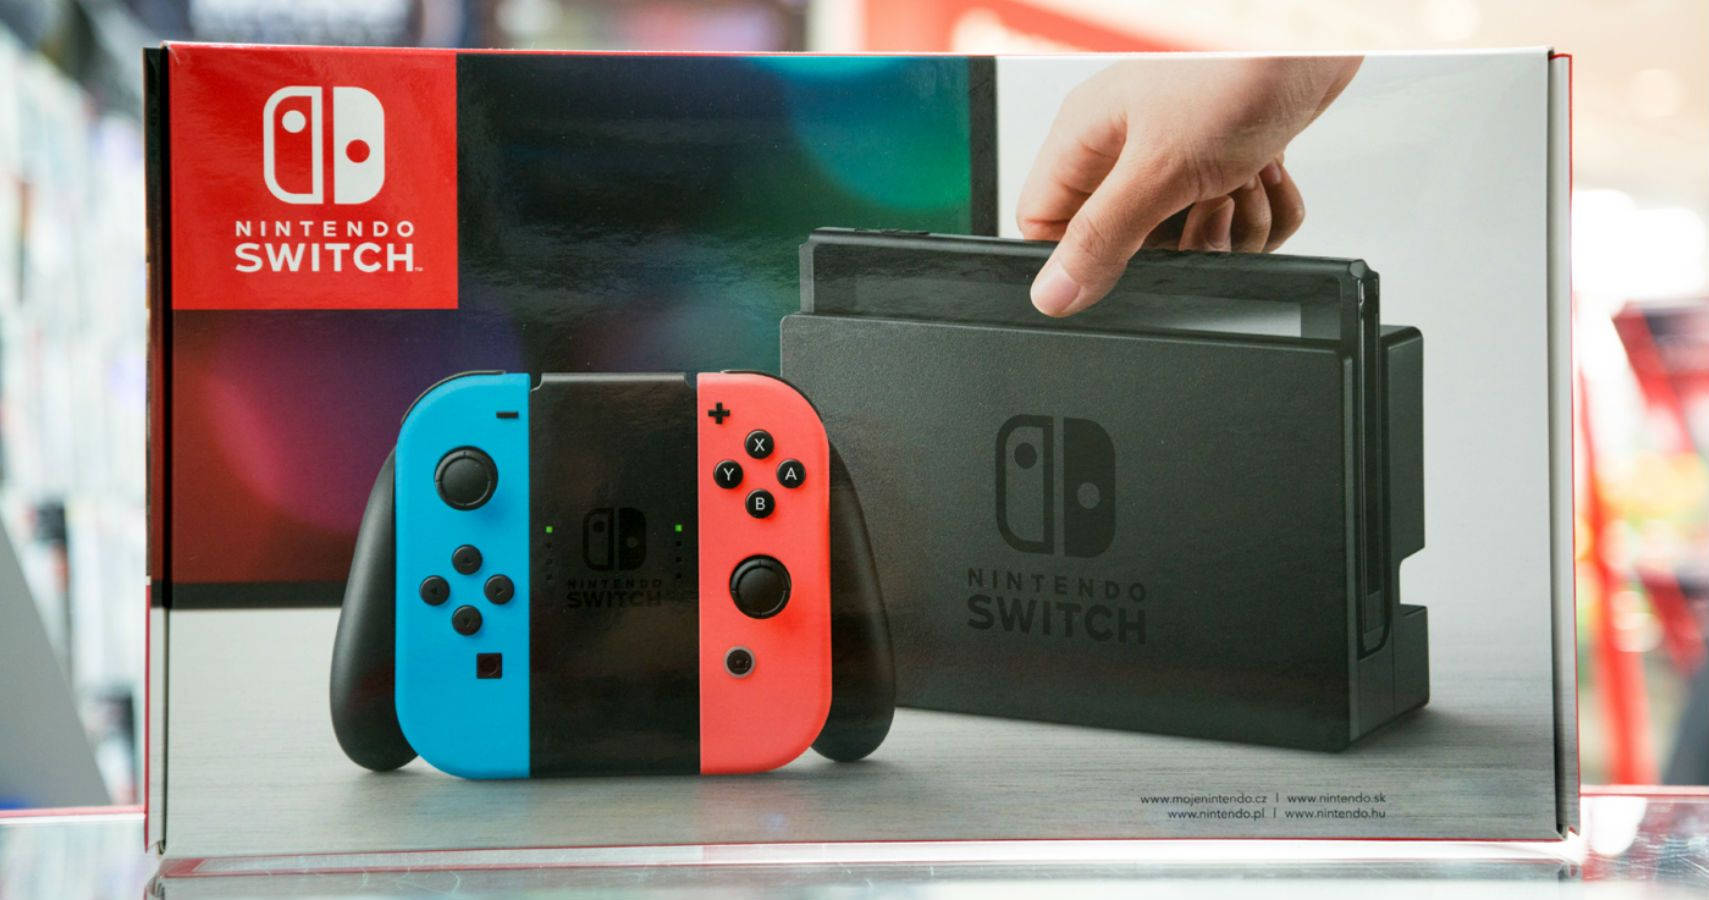 Nintendo Switch Restock Coming To Us Europe But Not Japan